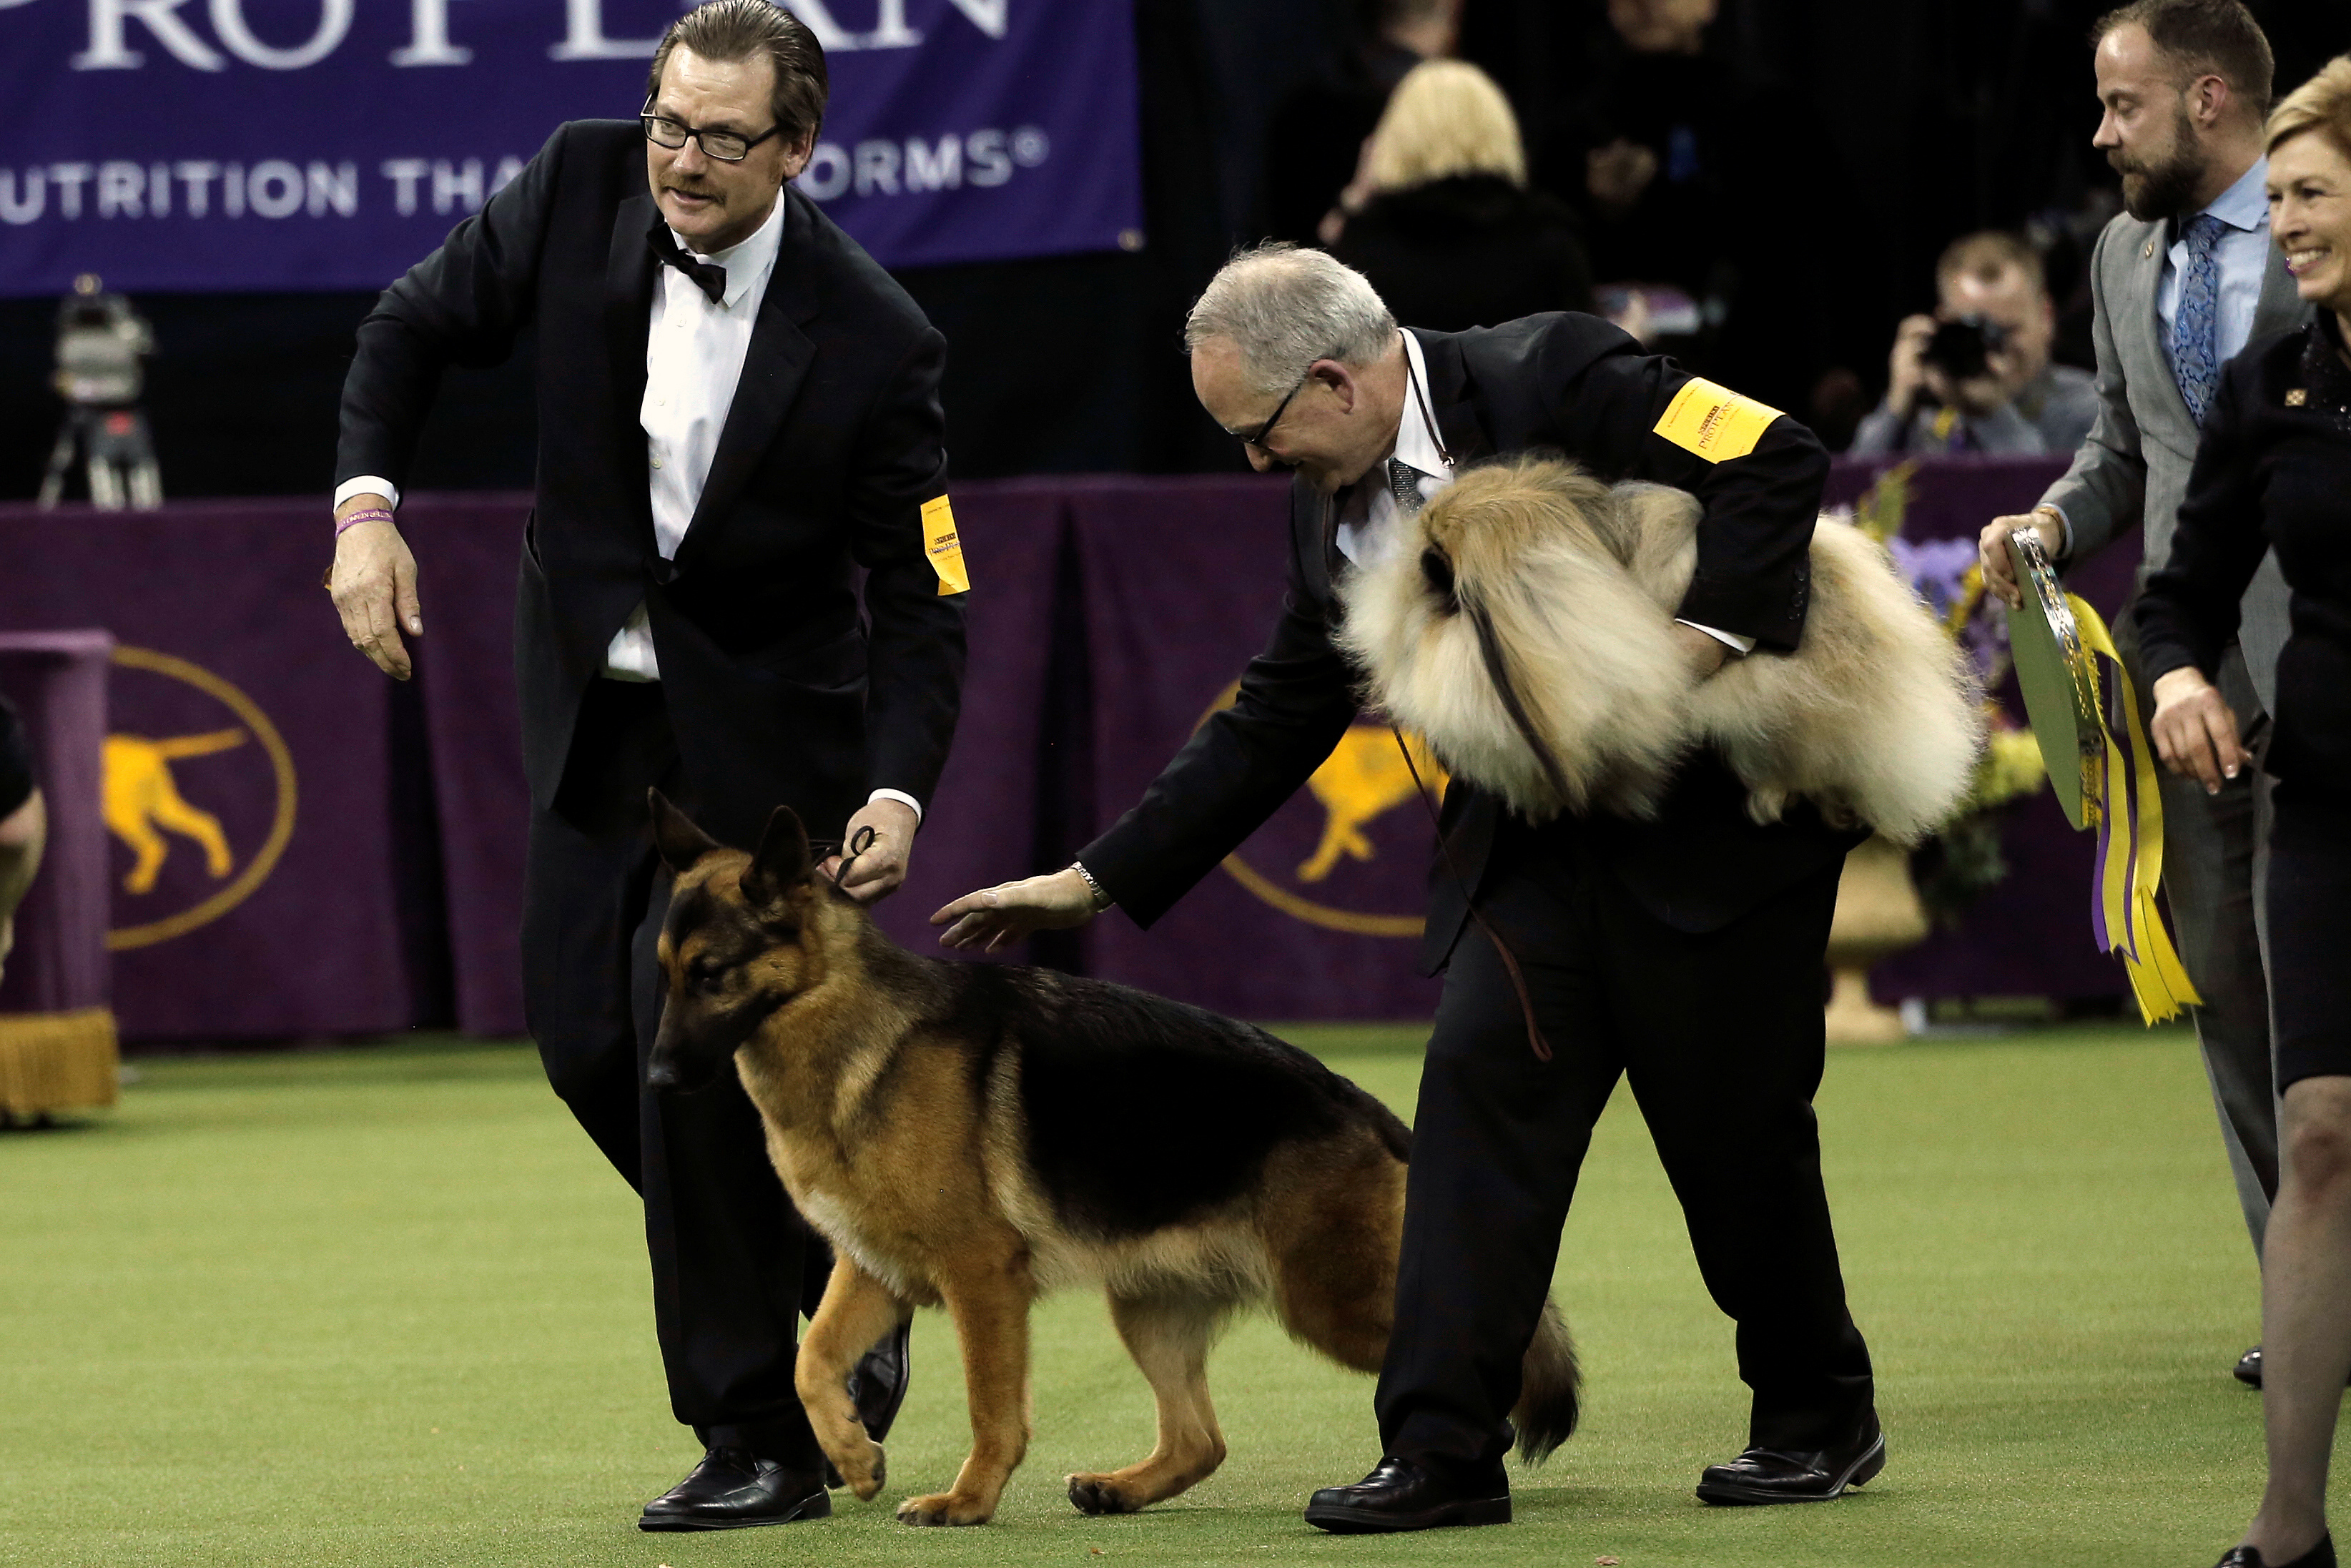 Rumor, a German shepherd, and his Handler Kent Boyles celebrate after winning Best In Show at the 141st Westminster Kennel Club Dog Show during the final judging at Madison Square Garden on Feb. 14.